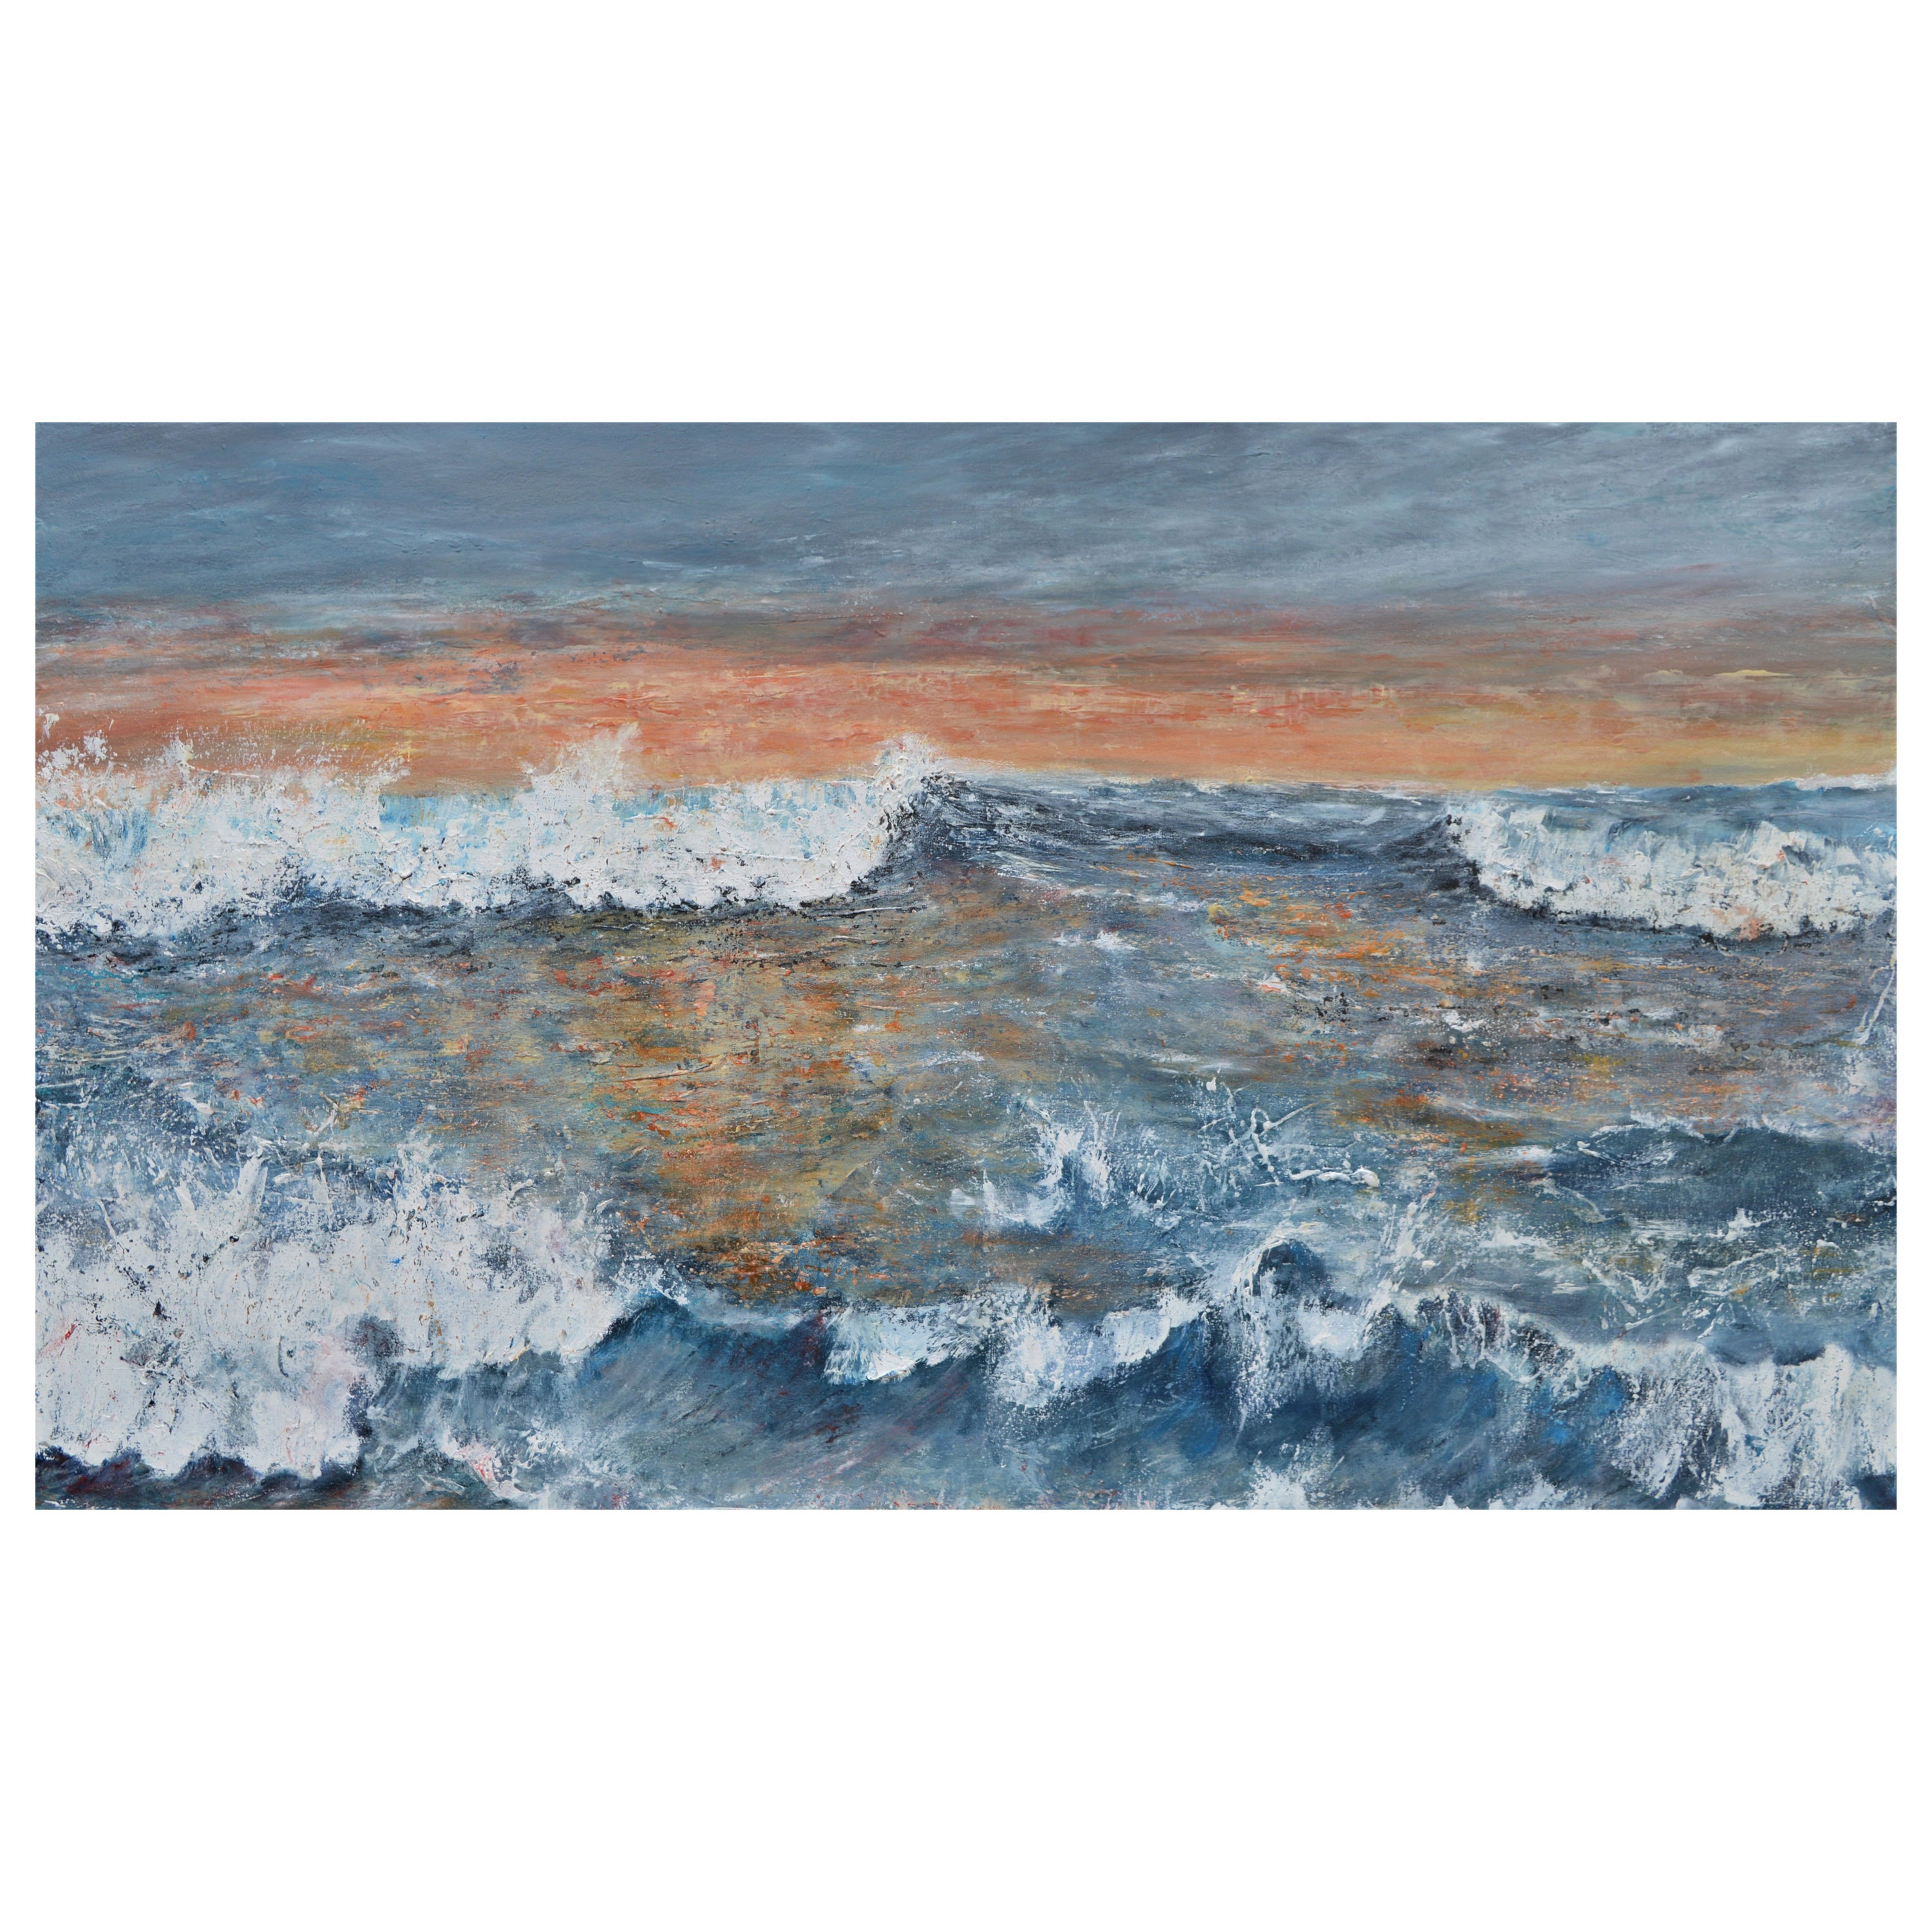 Western Promise: A Good Day Beckons, Large Contemporary Seascape Oil Painting